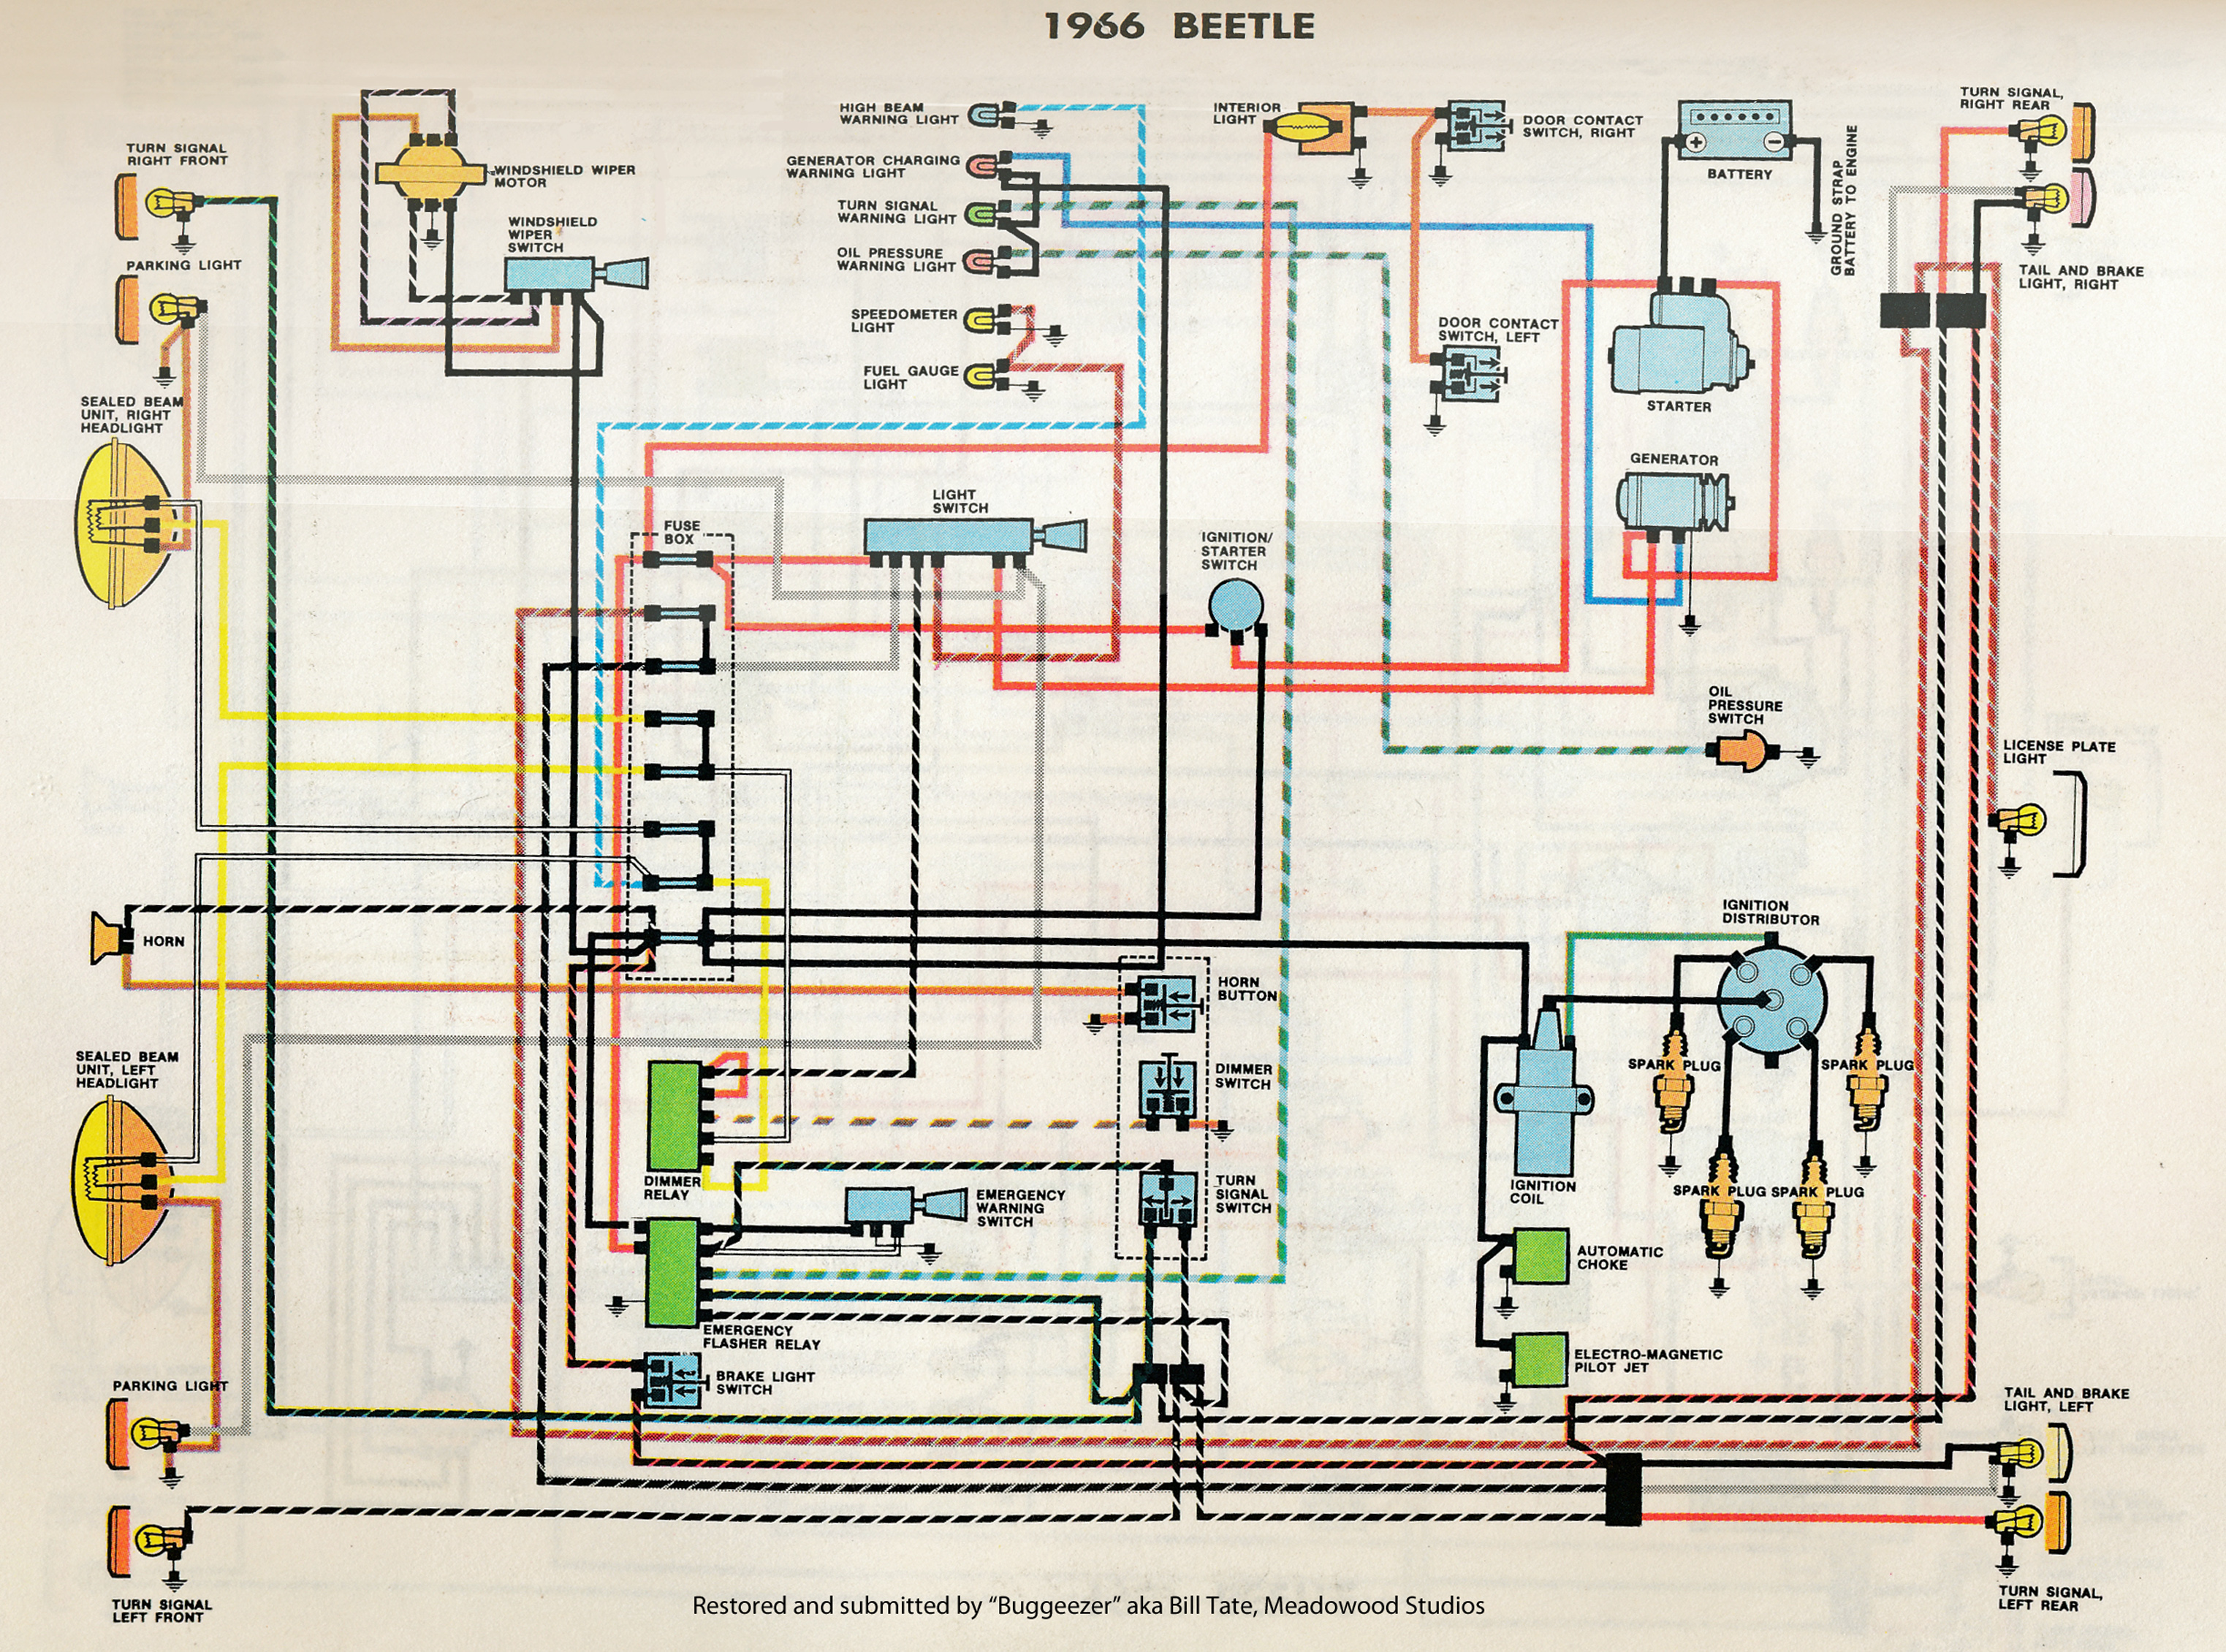 Wiring Diagram Additionally S13 Ka24de Wiring Diagram As Well Wiring